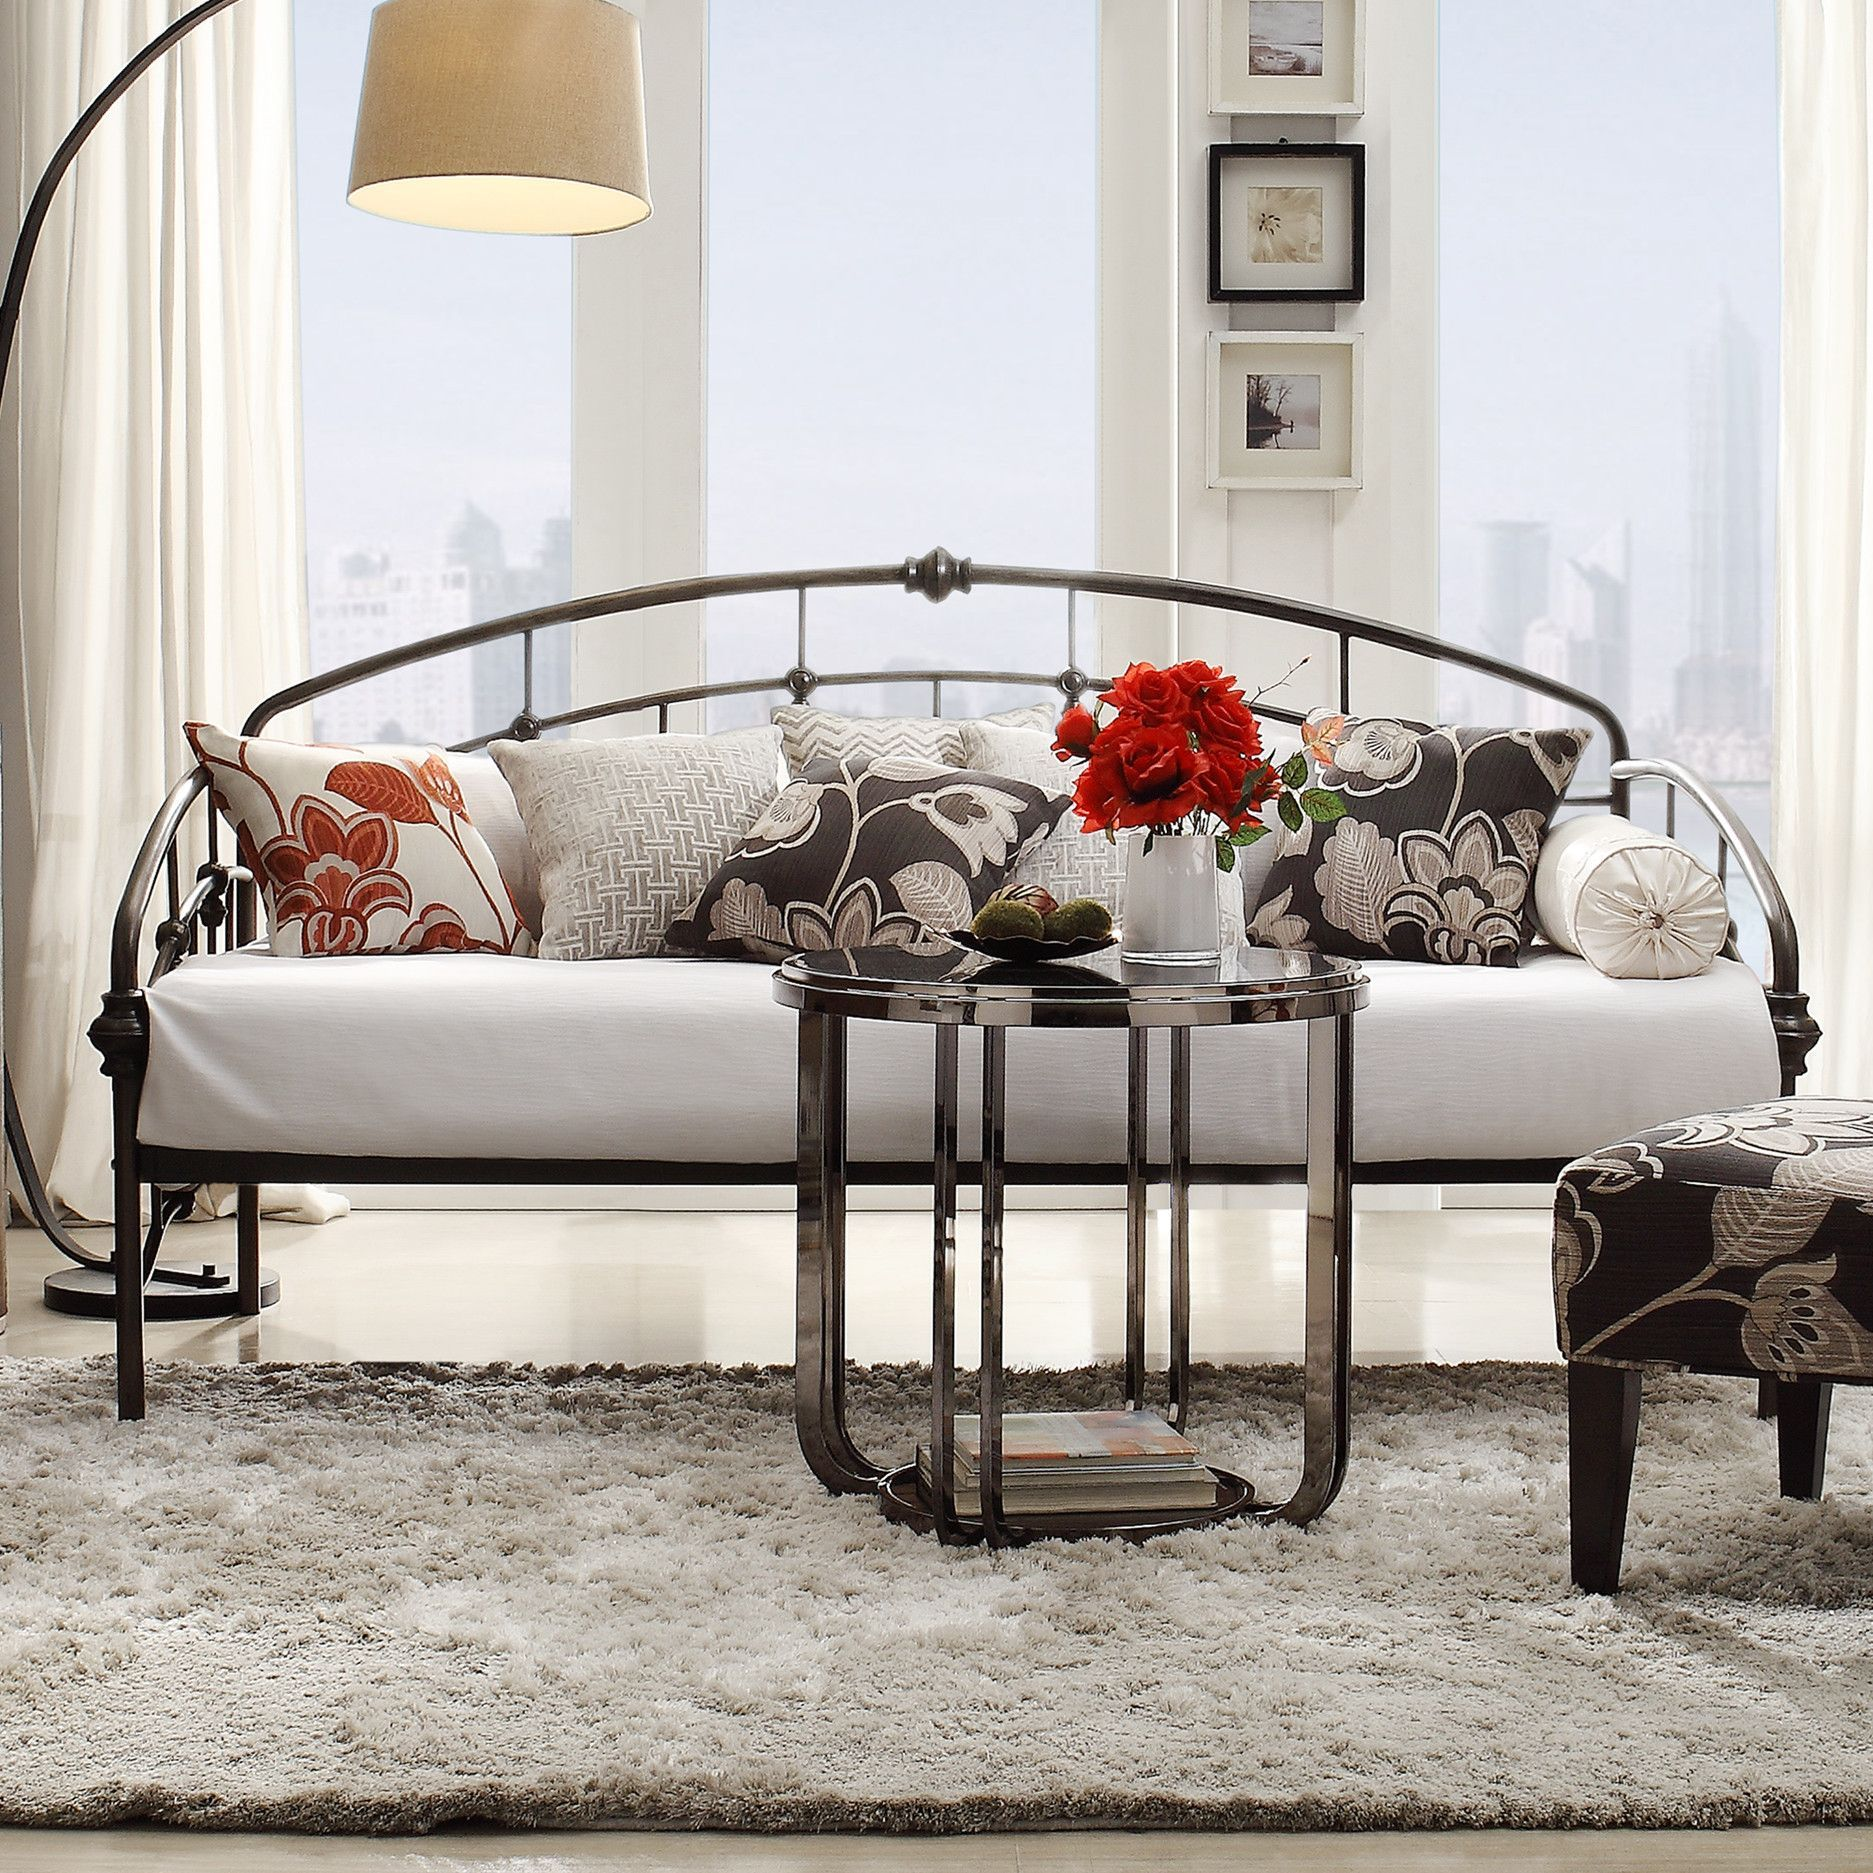 The Wayfair Daybed Of Today, Comfortable And Beautiful in